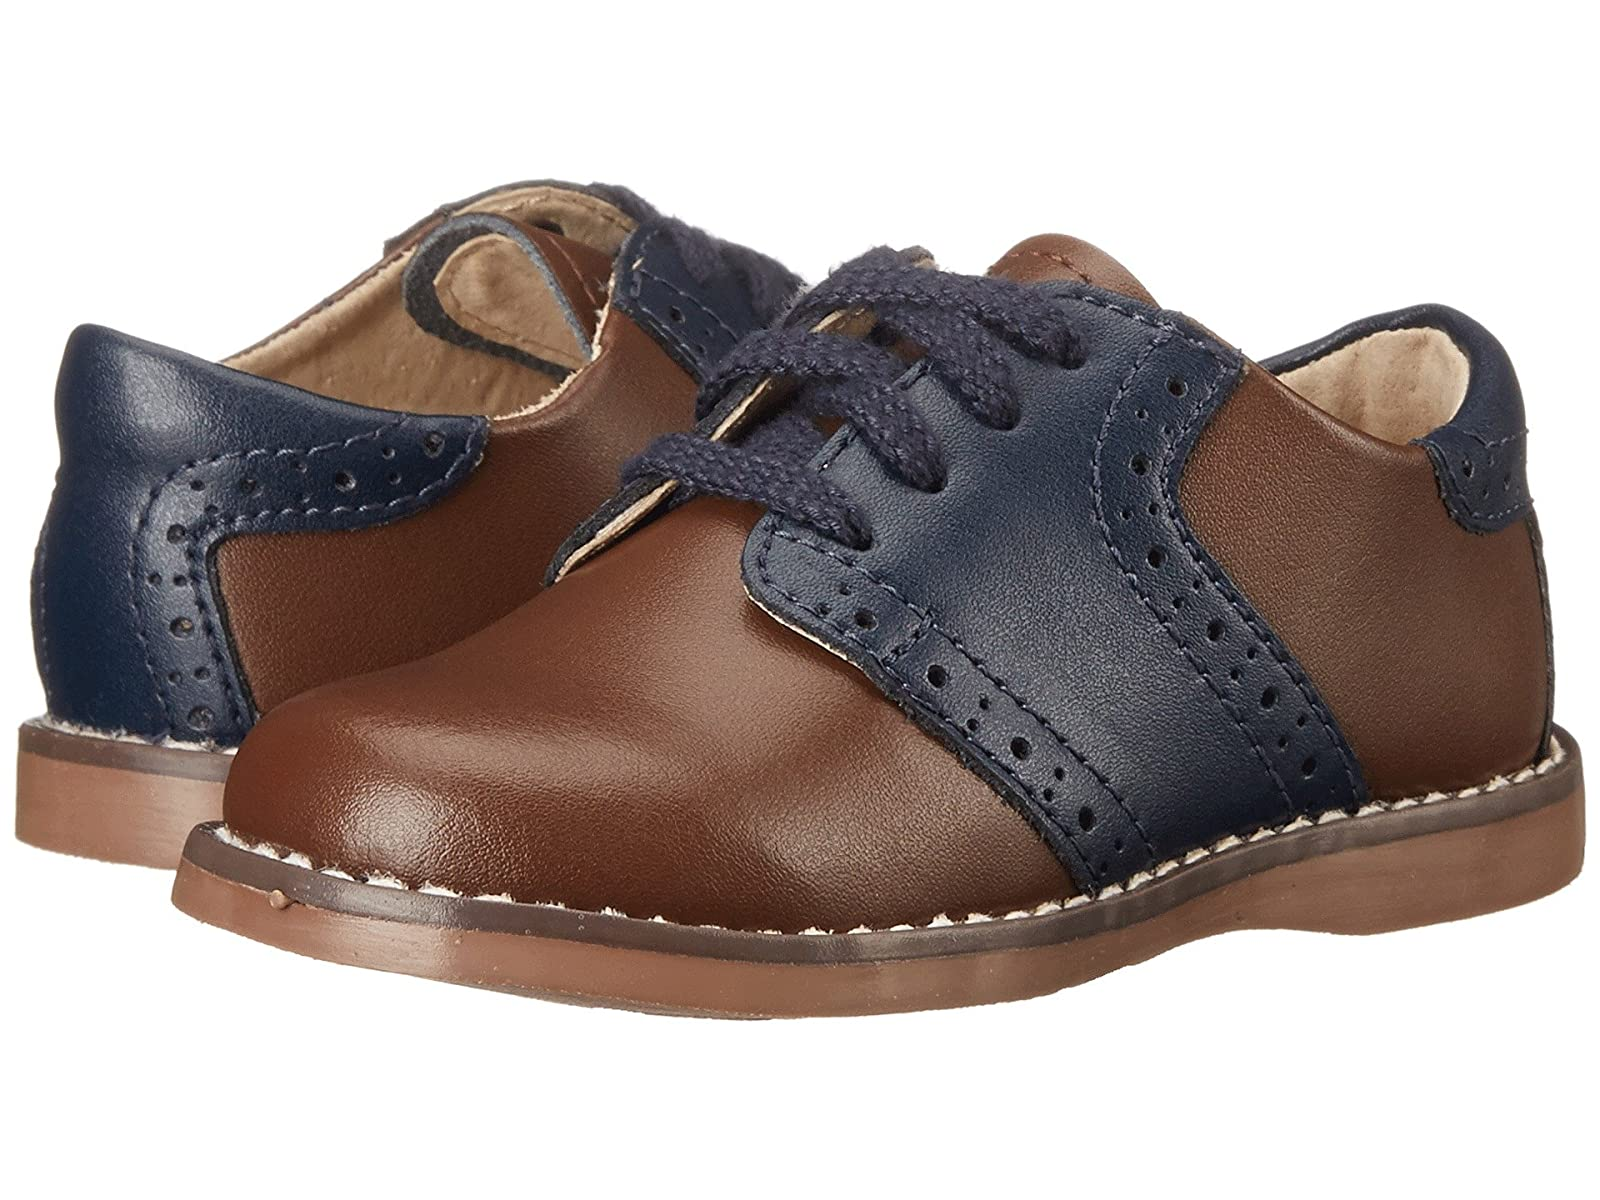 FootMates Connor 2 (Toddler/Little Kid)Atmospheric grades have affordable shoes